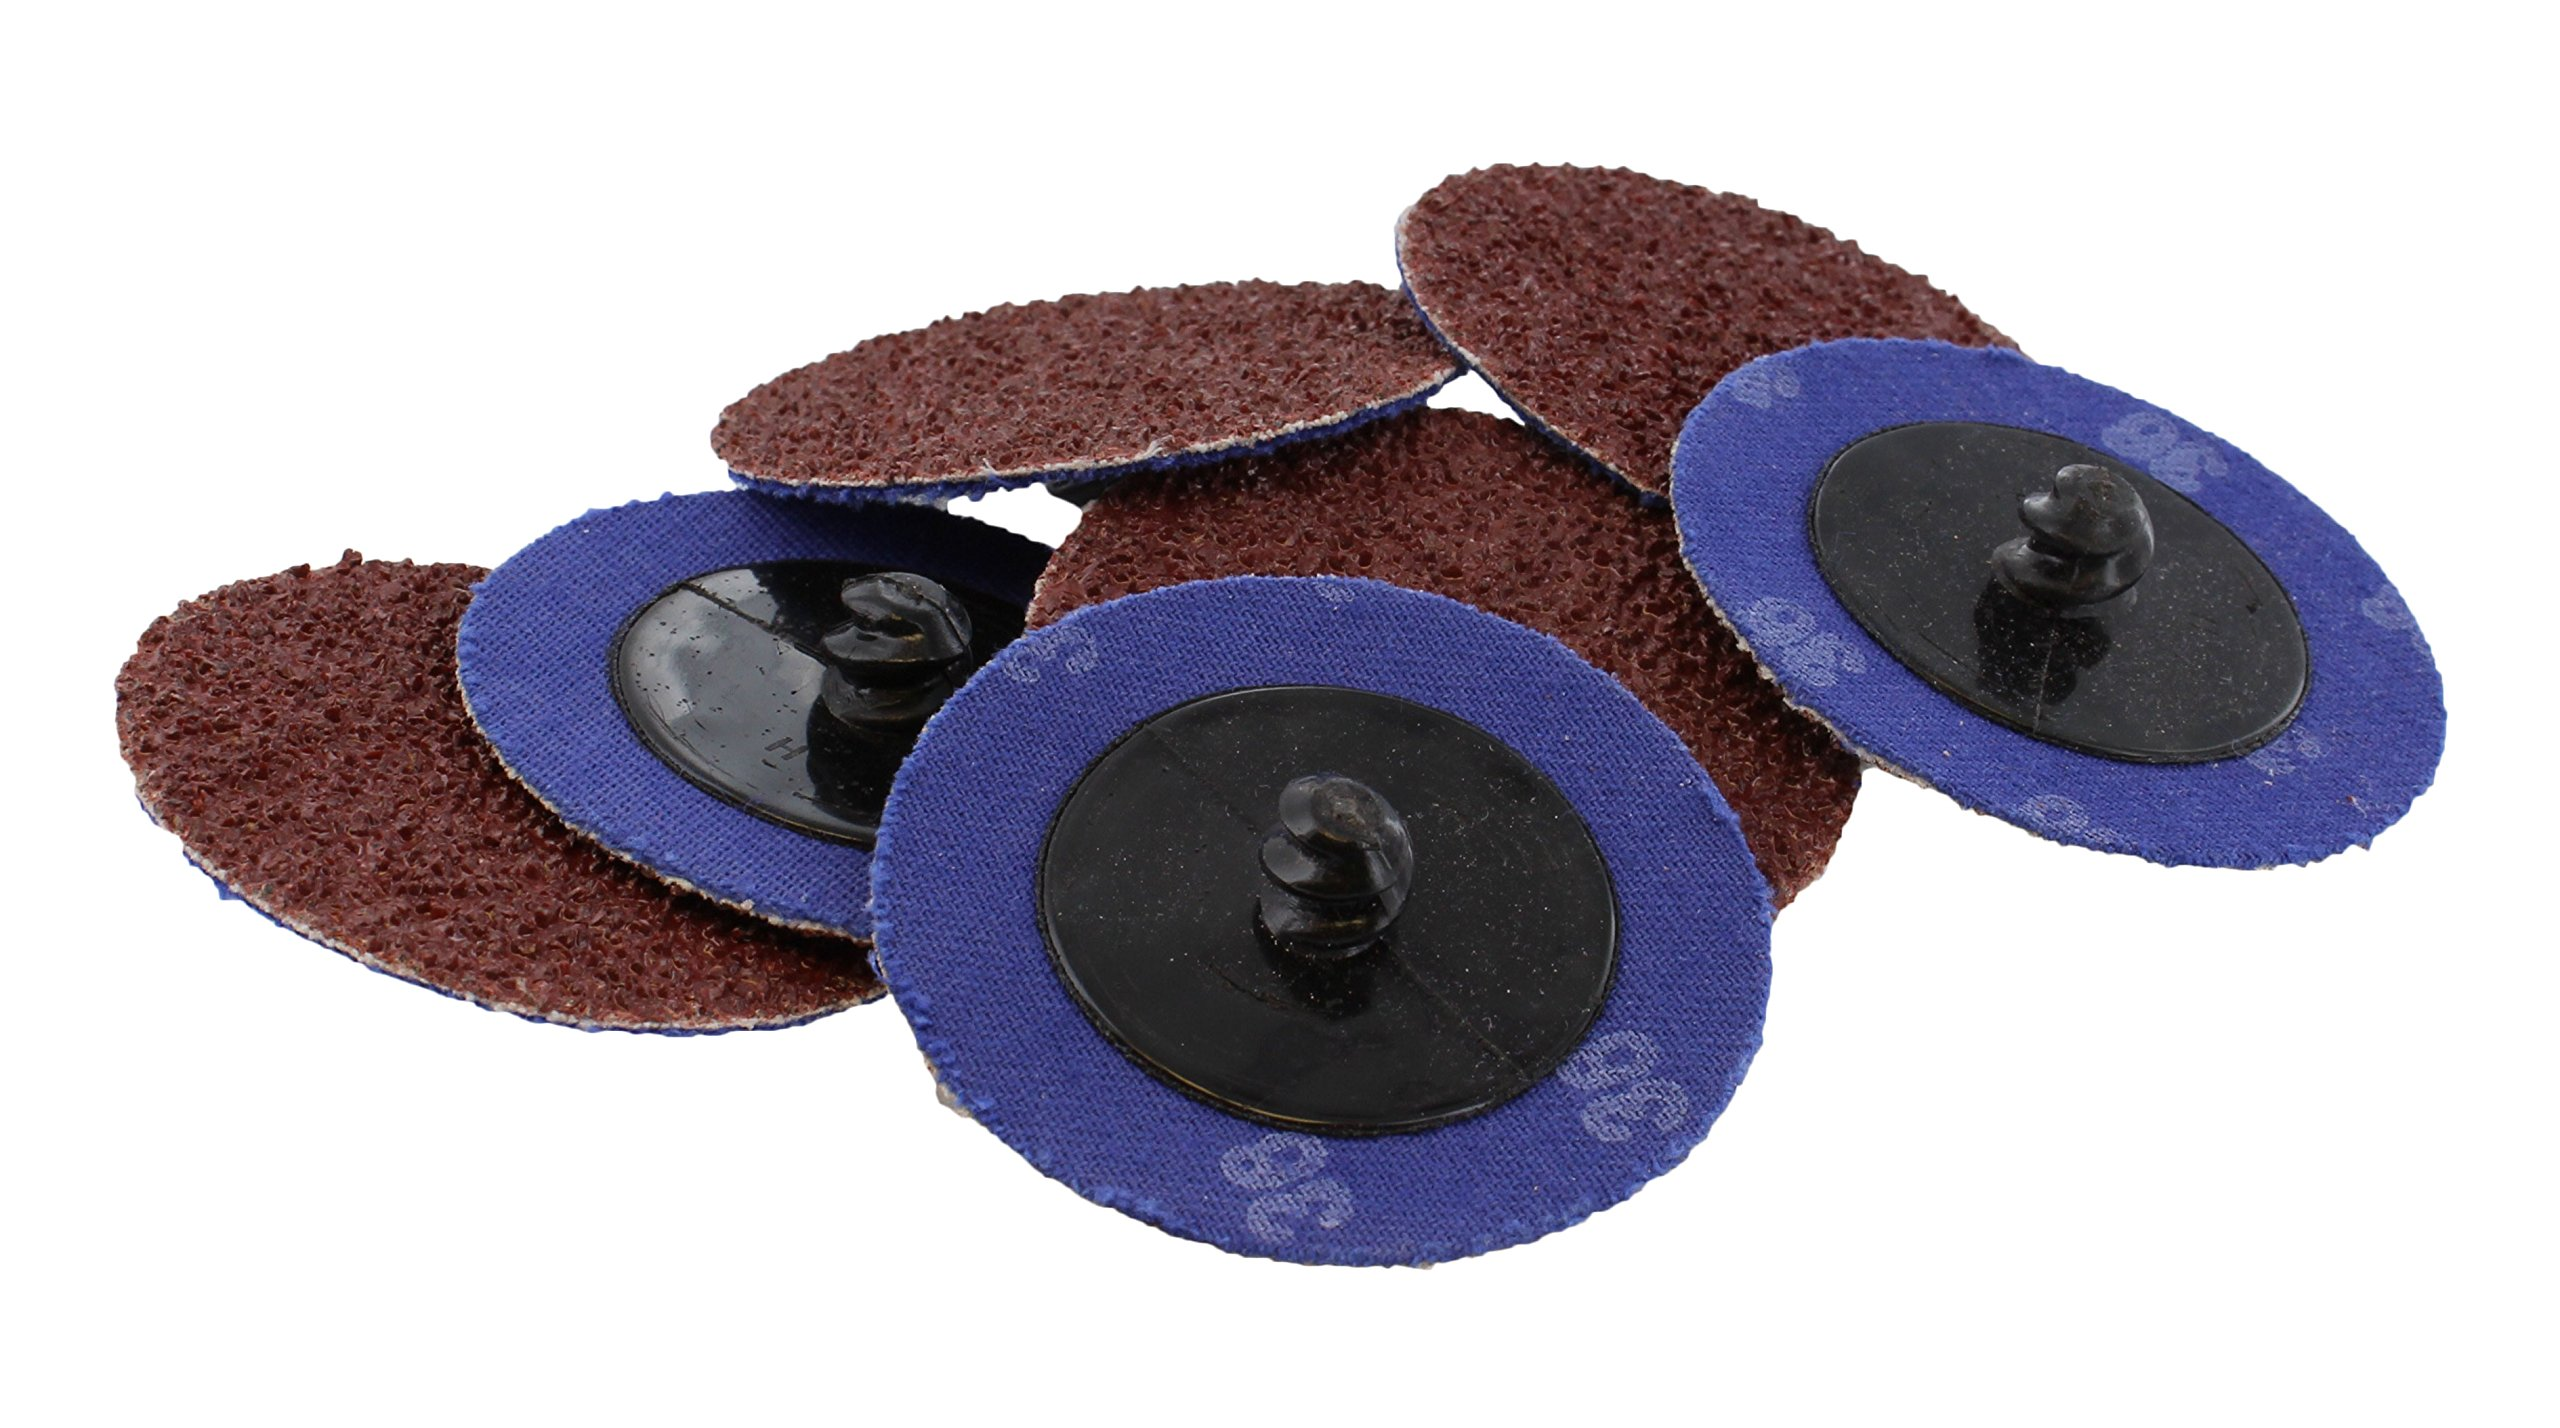 """ABN Aluminum Oxide Roloc Abrasive Sanding Discs 50-Pack, 2"""" Inch, 36 Grit – Metal Wheels for Surface Prep and Finishing"""